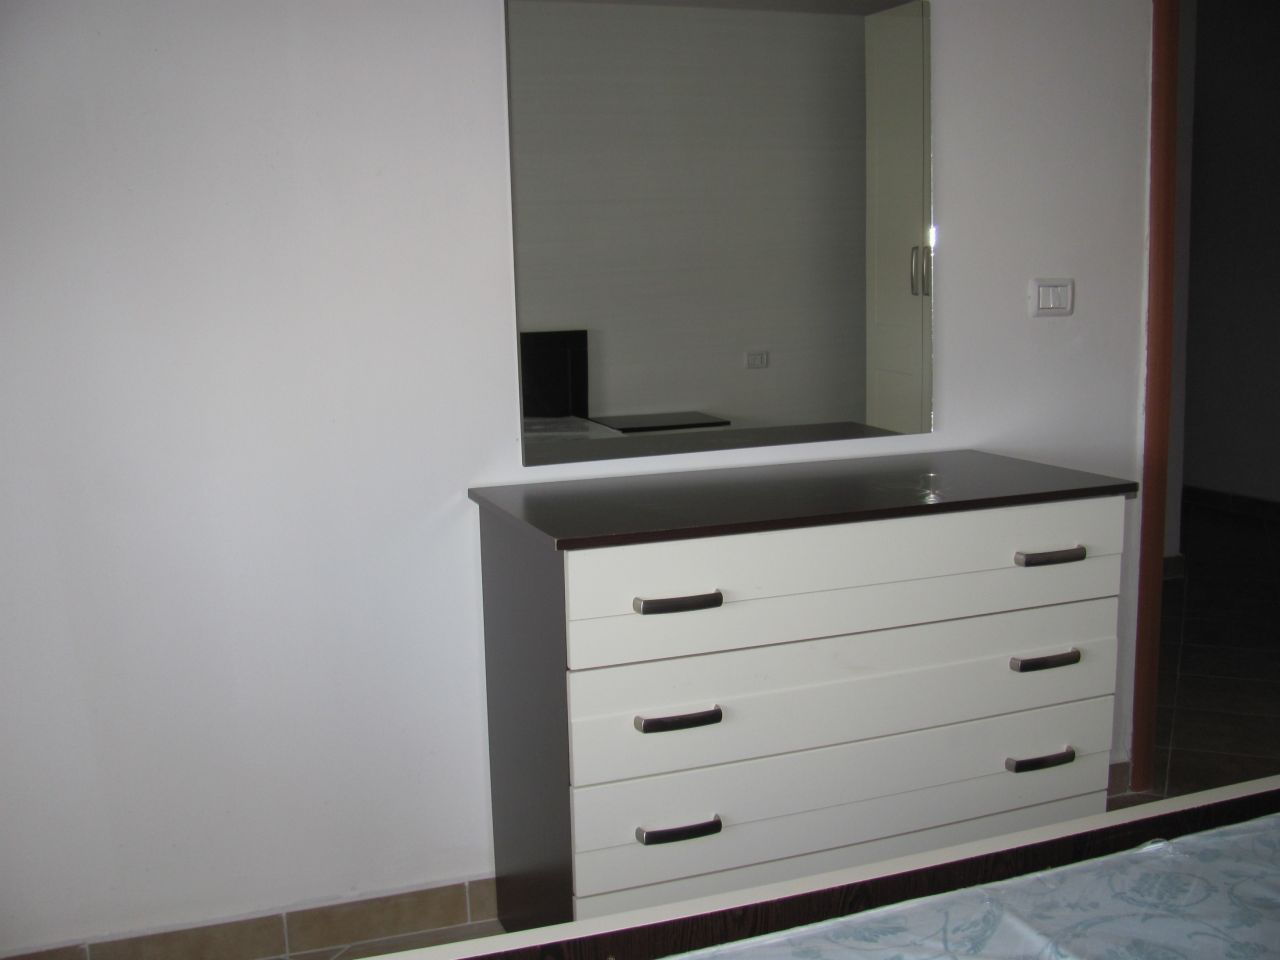 2 bedrooms apartment for rent in tirana, very close to the center